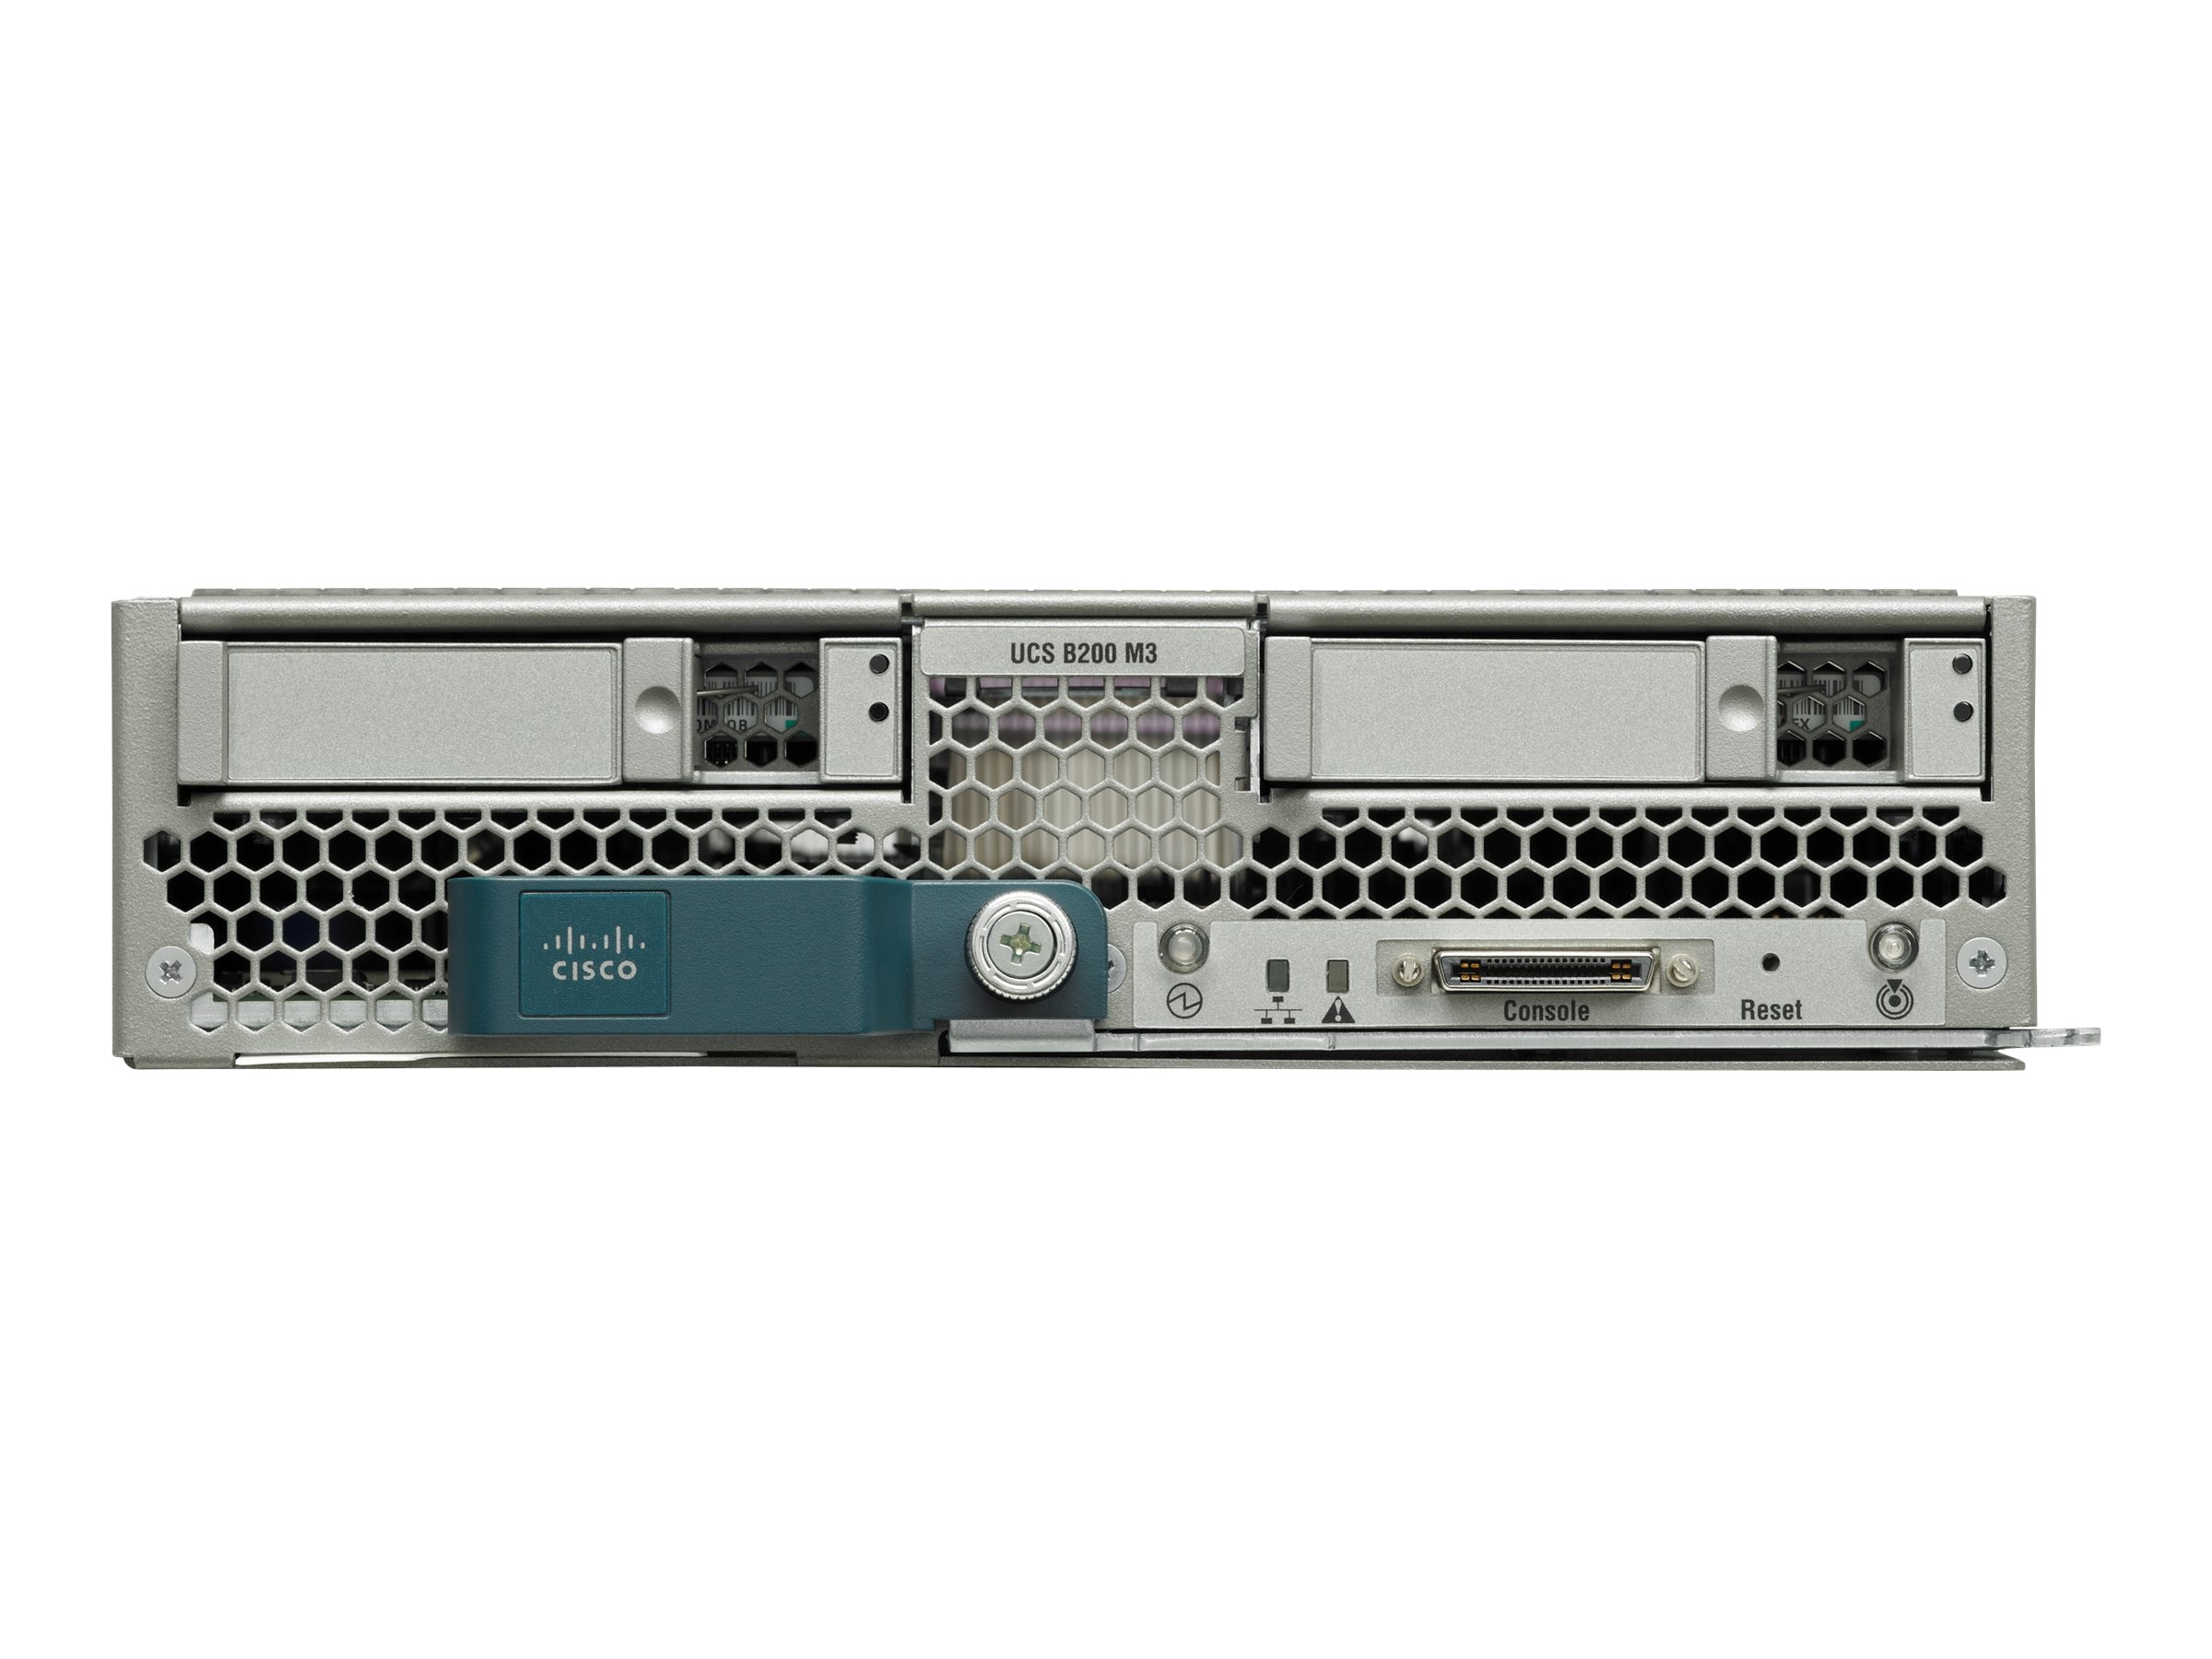 Cisco UCS B200 M3 Value SmartPlay 5108 Chassis (4x)Blades (2x)Xeon E5-2640 v2 2.0GHz 128GB 2x2.5Bays 40Gb